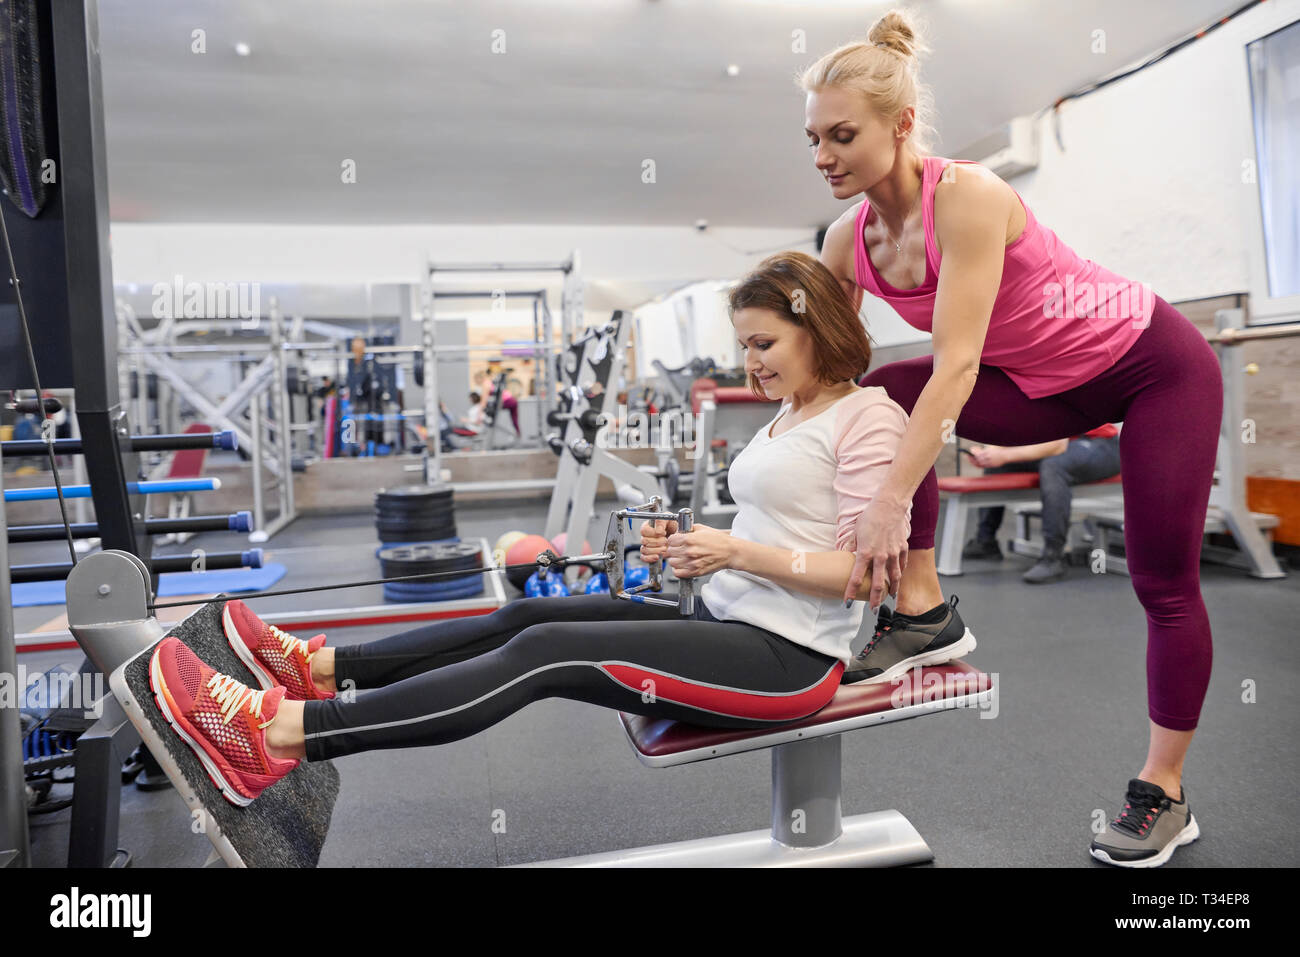 Mature woman doing sport exercises with personal trainer at gym. Female instructor assisting older woman. - Stock Image